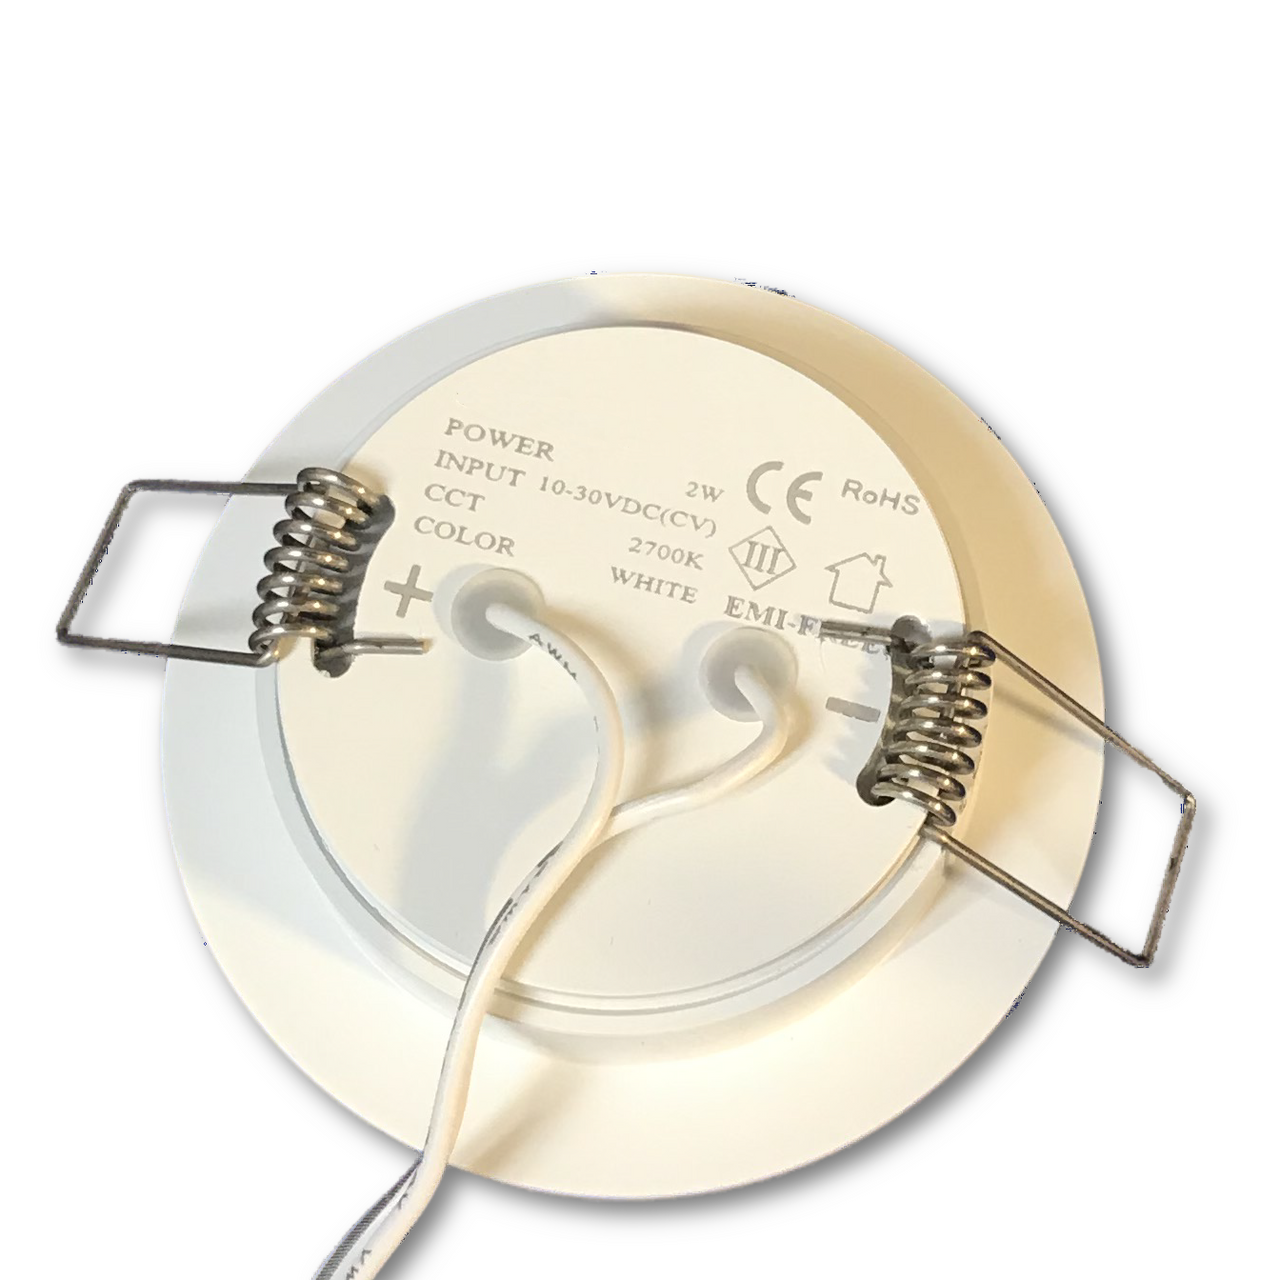 Recessed low profile LED downlight with spring mounting clips